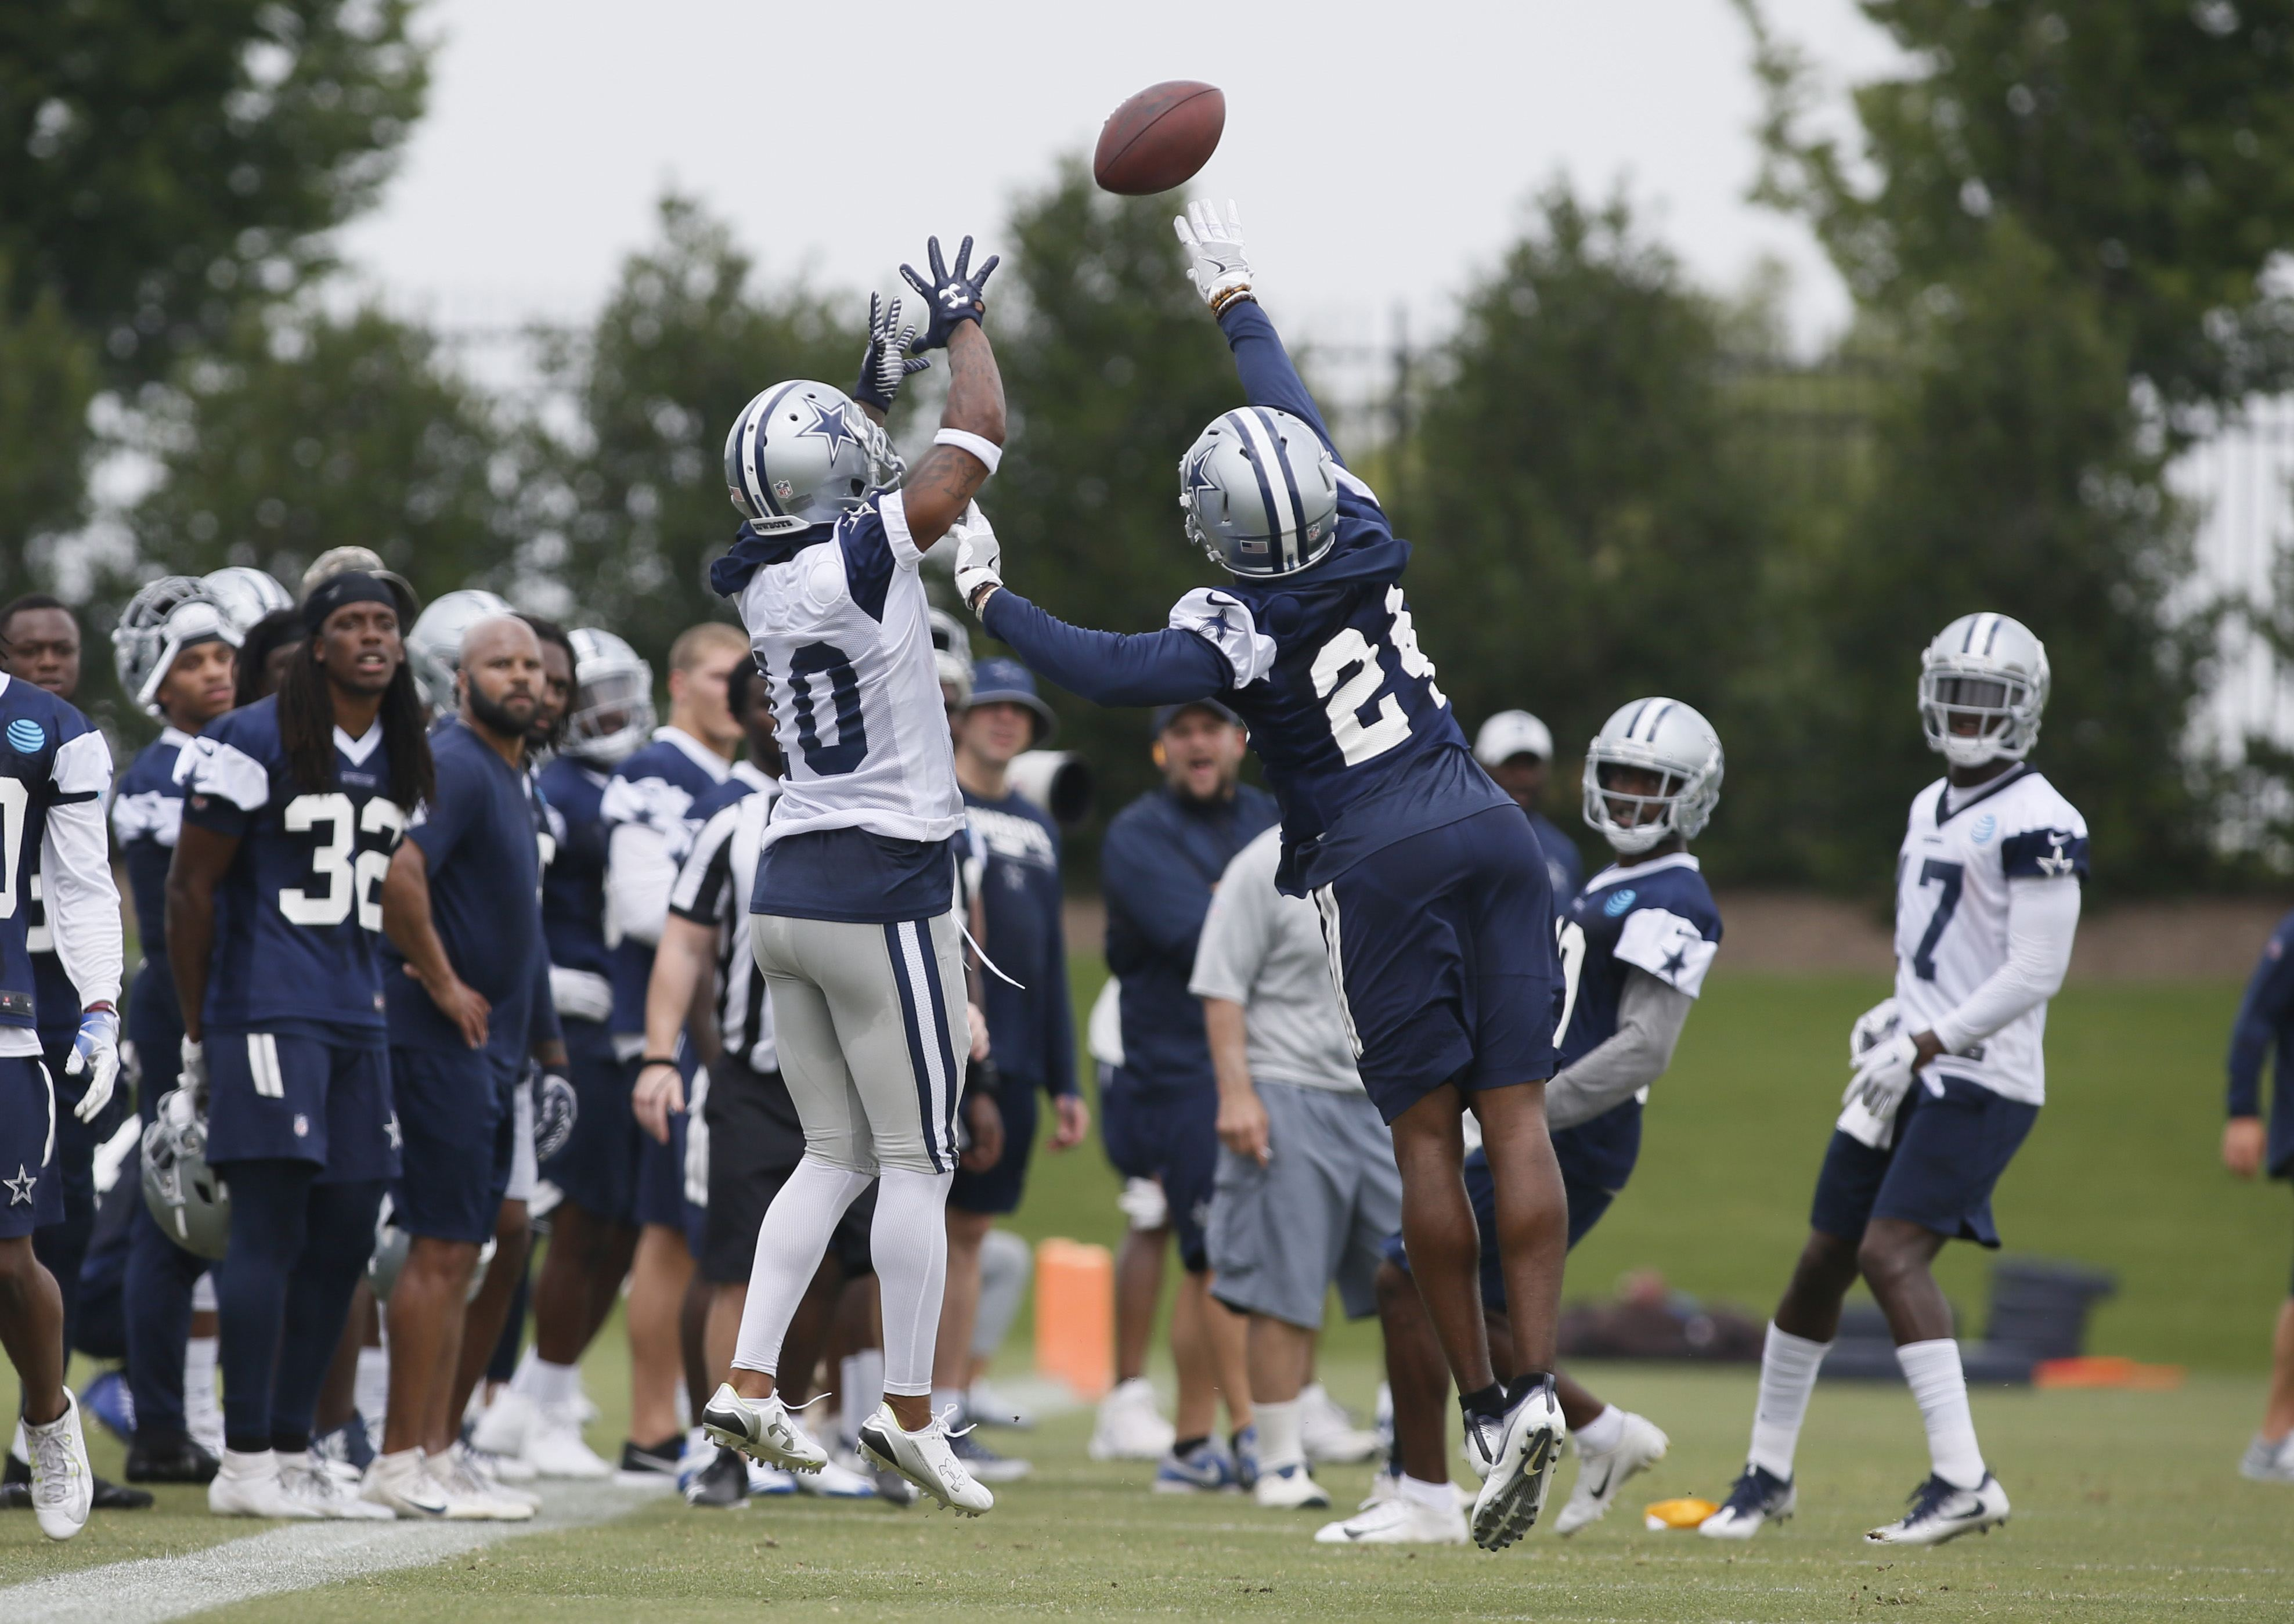 Understanding Cowboys Formations on Offense from Week 1 of Training Camp